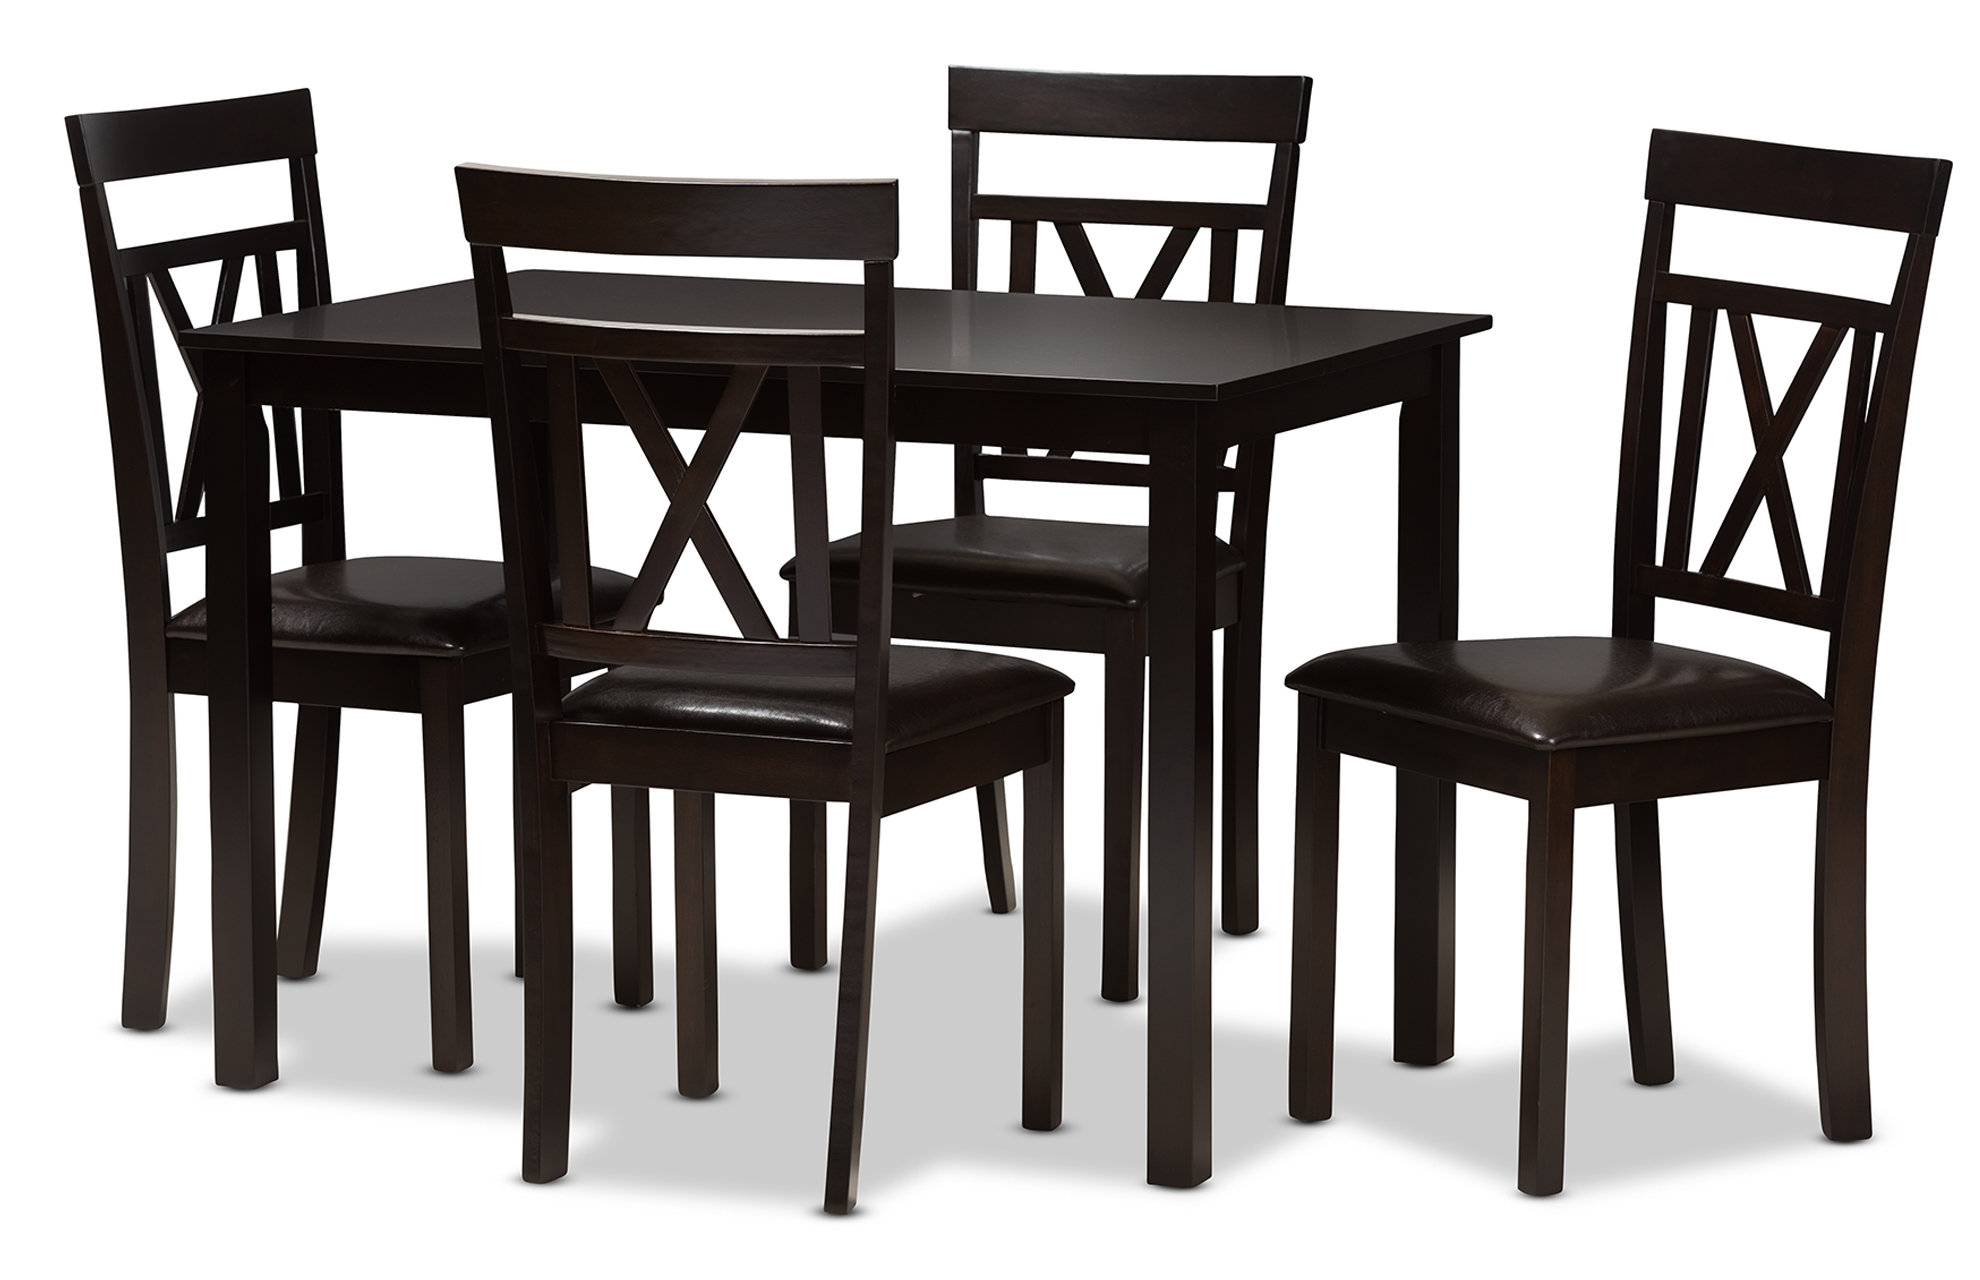 Whitbey Modern And Contemporary 5 Piece Breakfast Nook Dining Set Inside Most Up To Date 5 Piece Breakfast Nook Dining Sets (View 6 of 20)